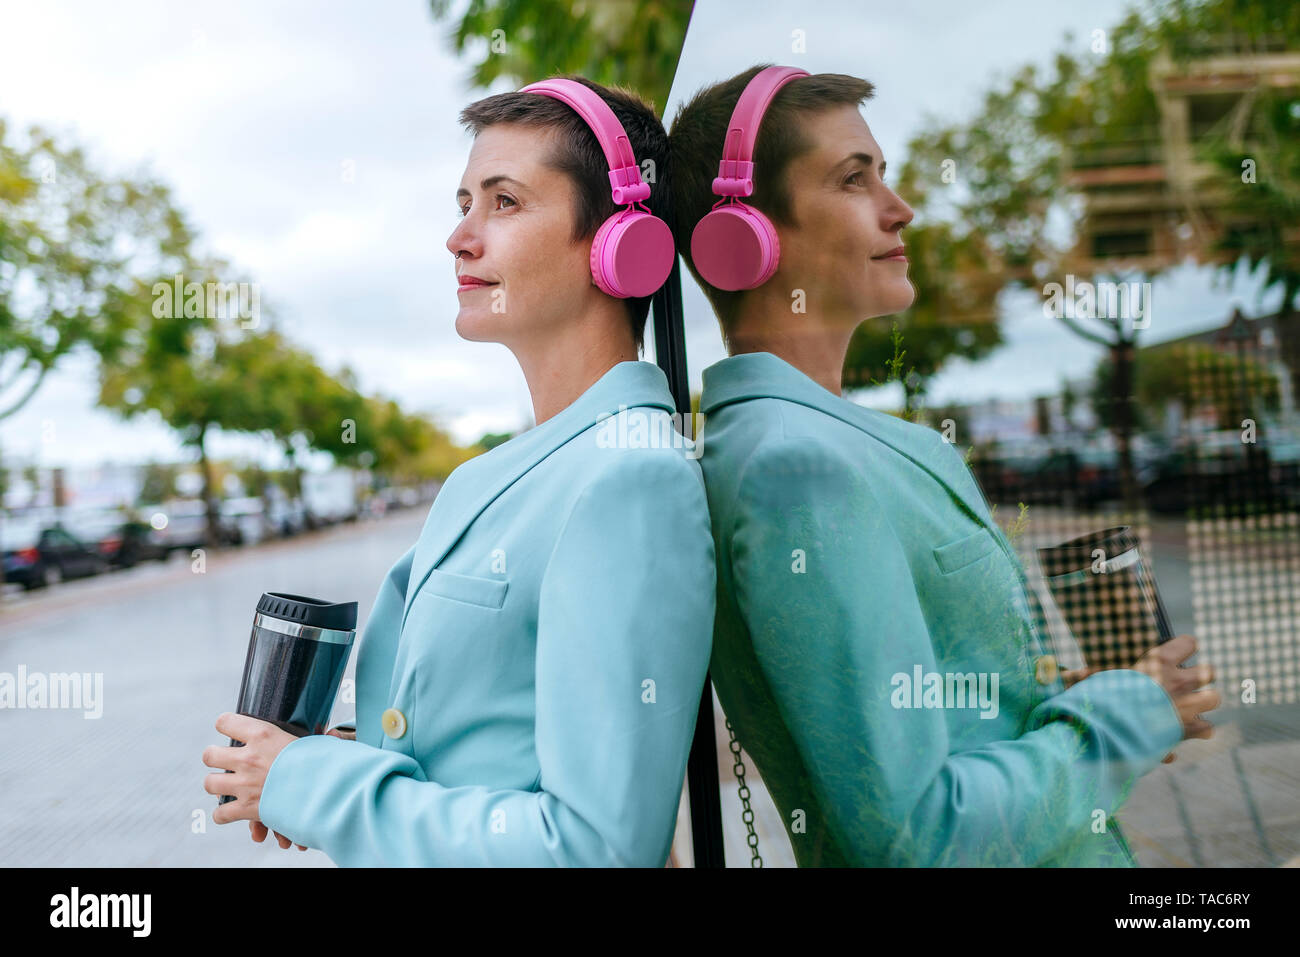 Woman dressed in jacket with thermo mug and pink headphones, reflection - Stock Image